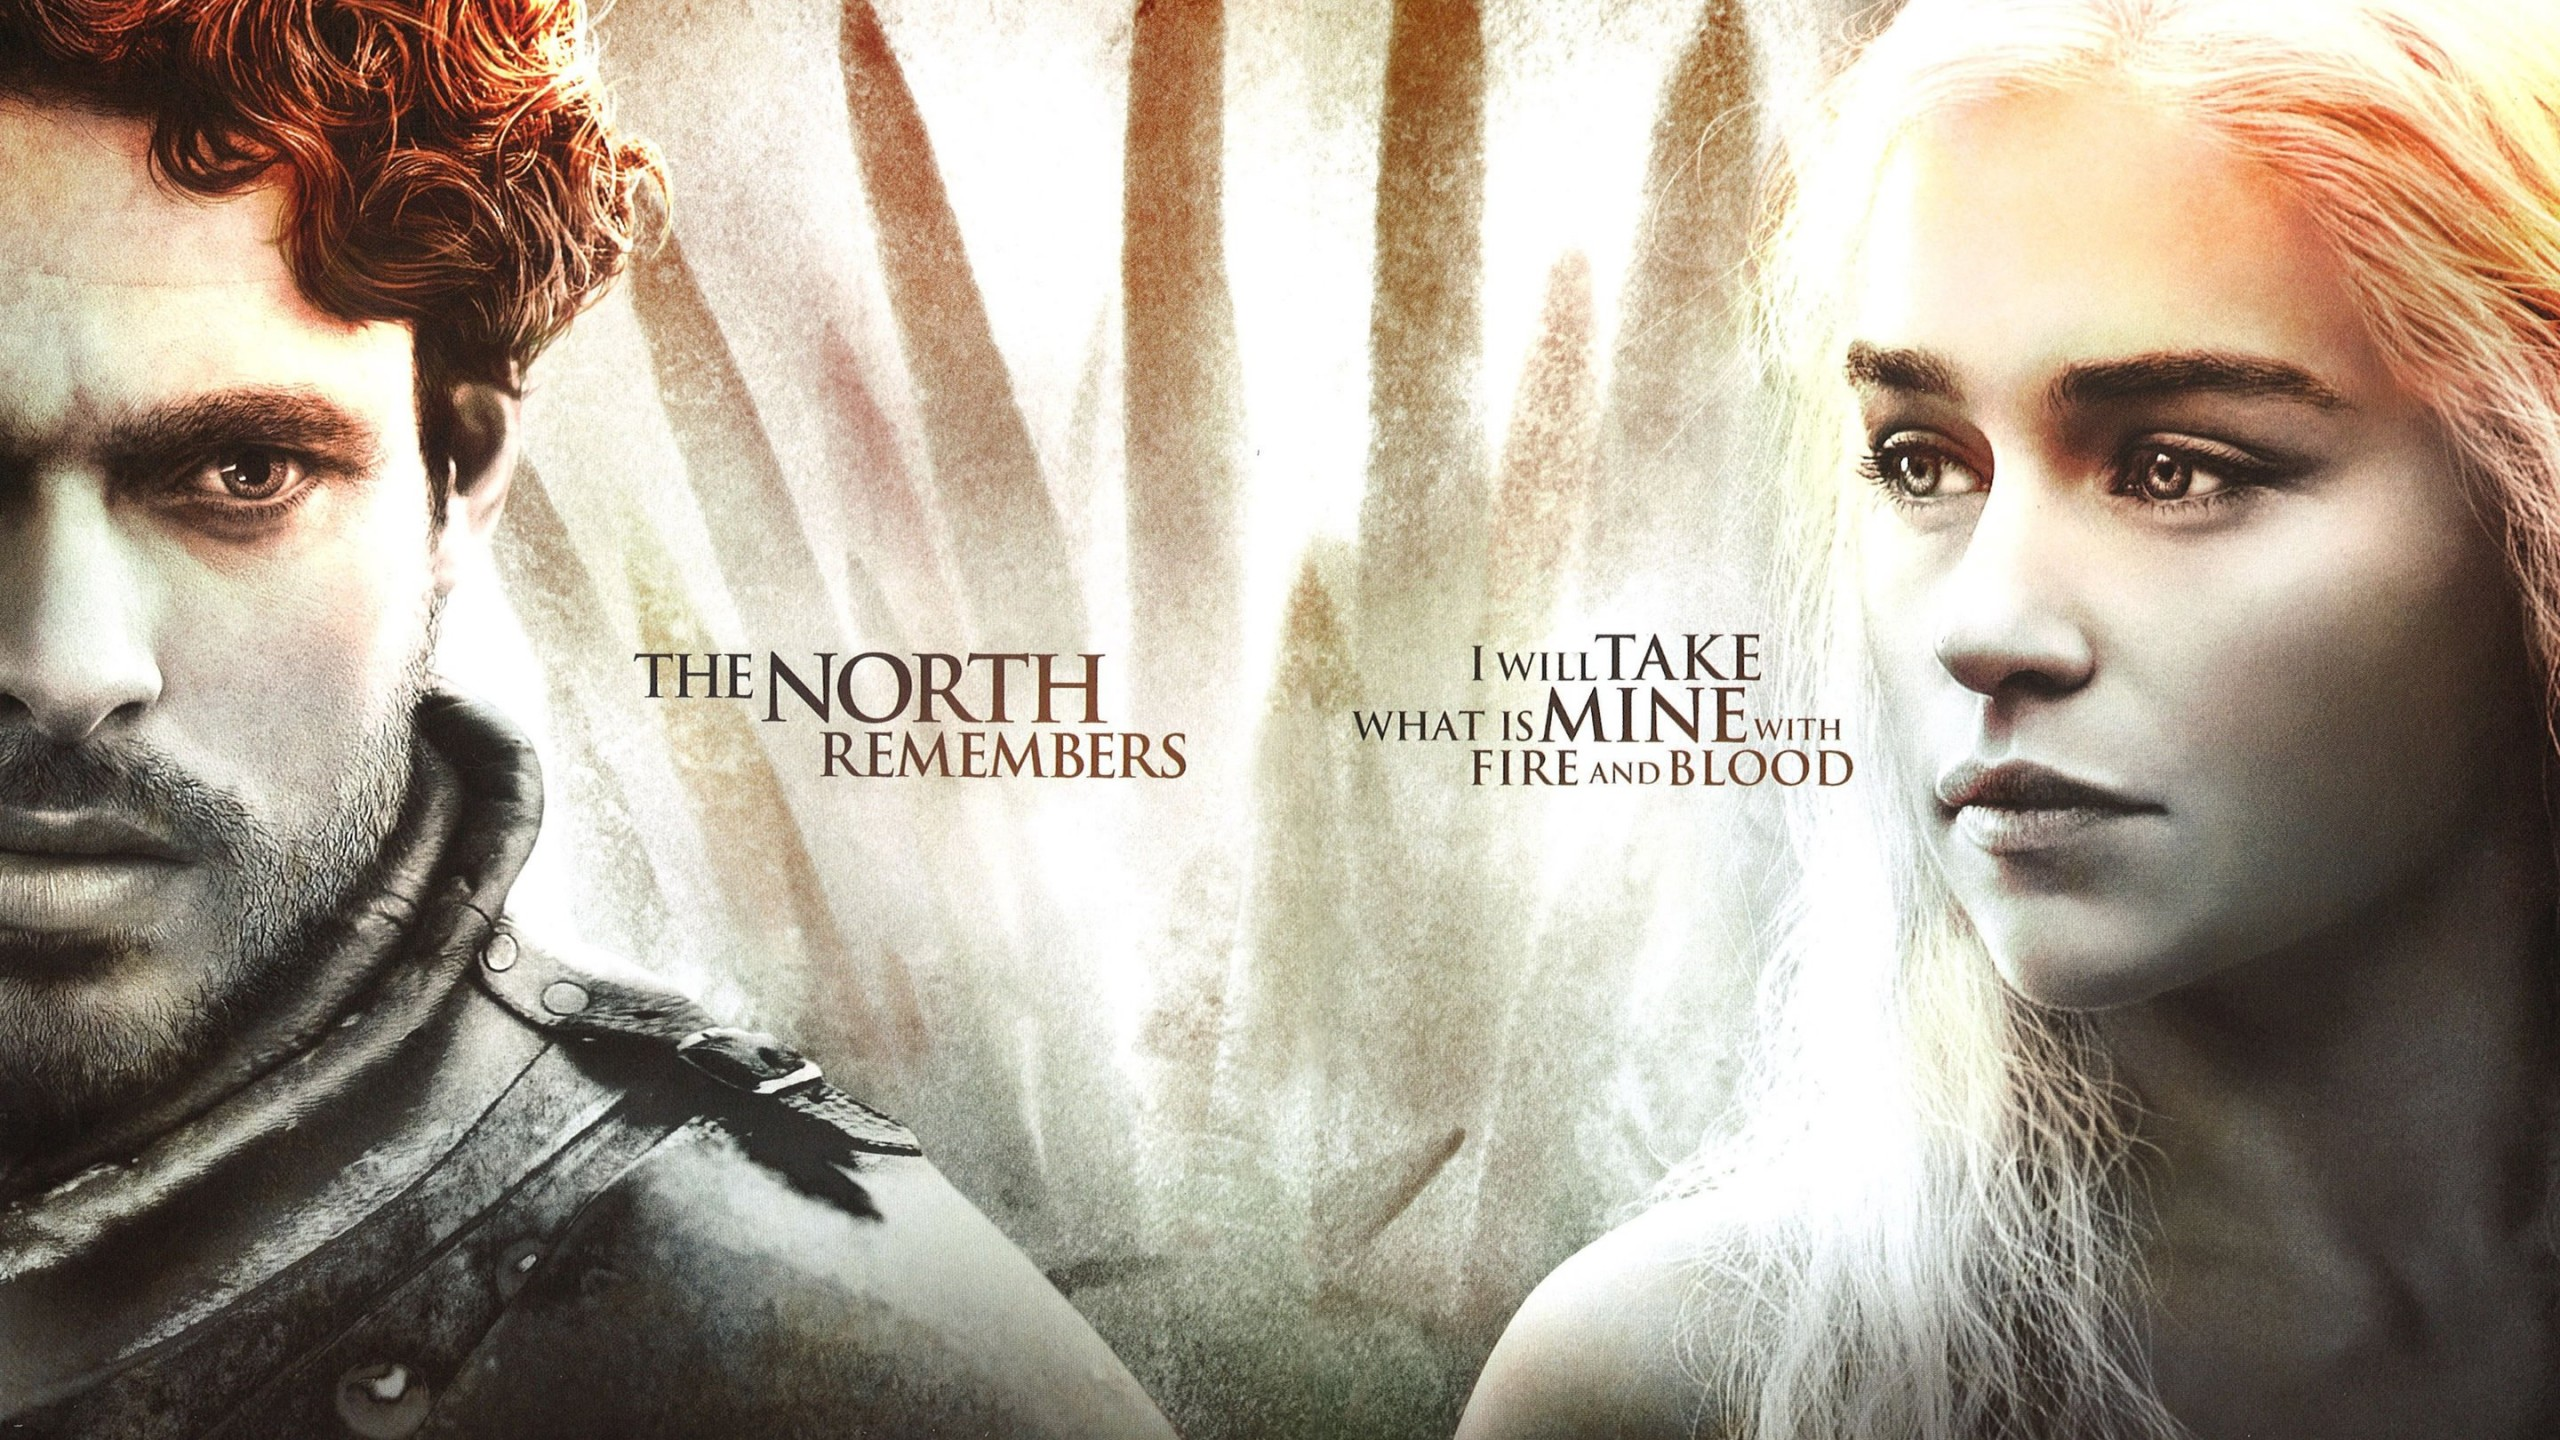 Game Of Thrones Season 4 Wallpaper for Social Media YouTube Channel Art